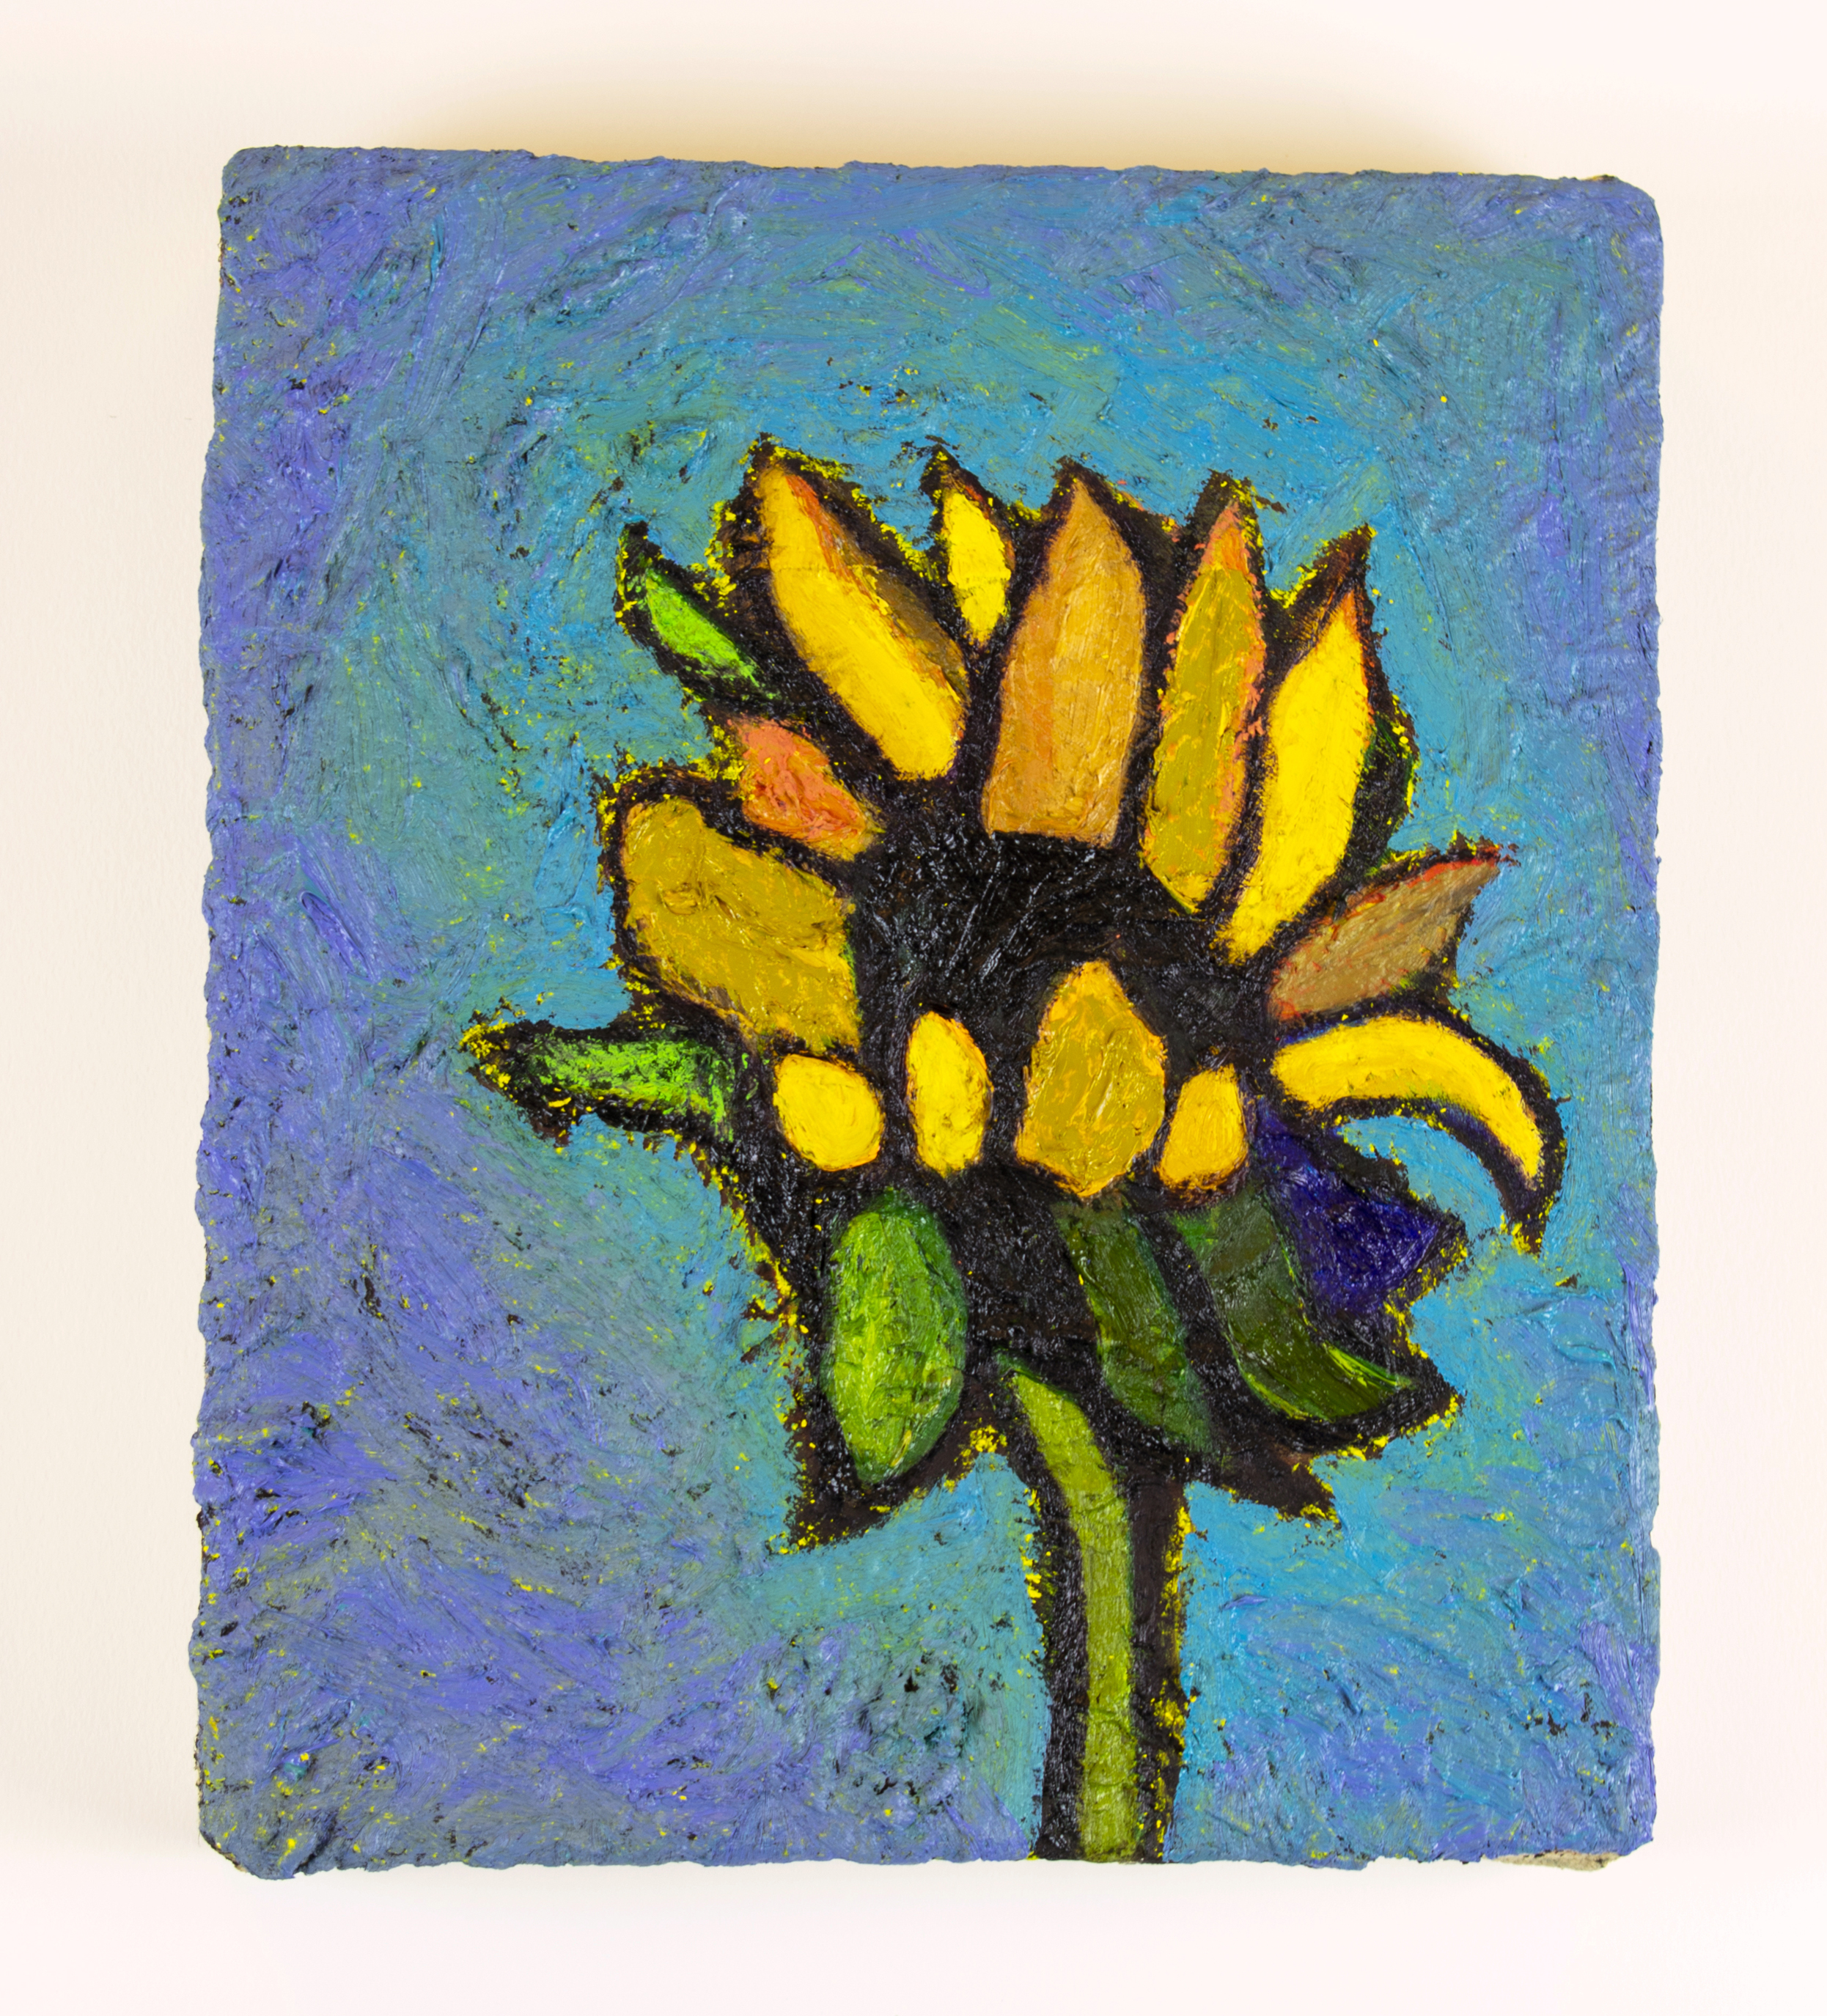 "David Bance, 'Sunflower', oil on hessian, 12"" x 10"", 2018"